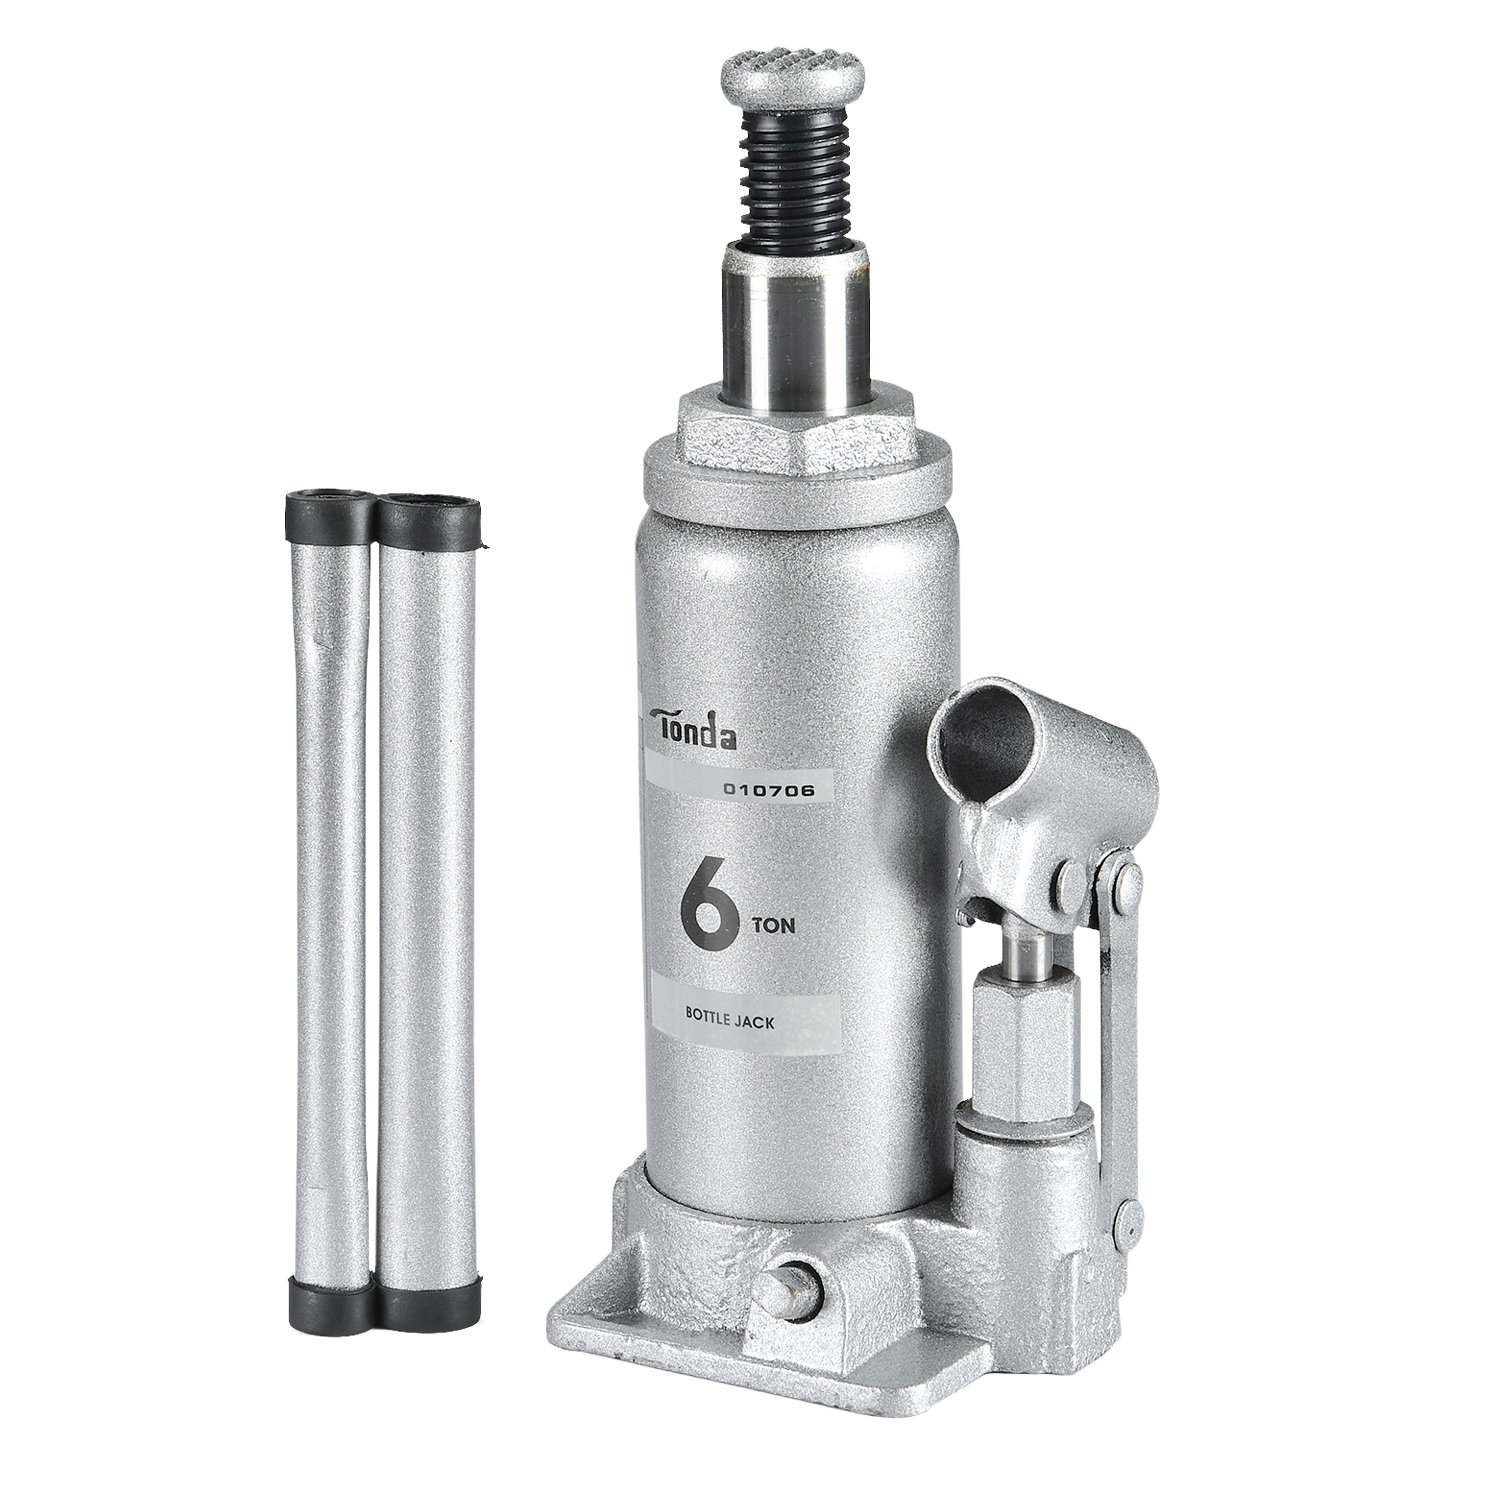 TONDA Hydraulic Bottle Jack Silver, 6 TON Heavy Duty